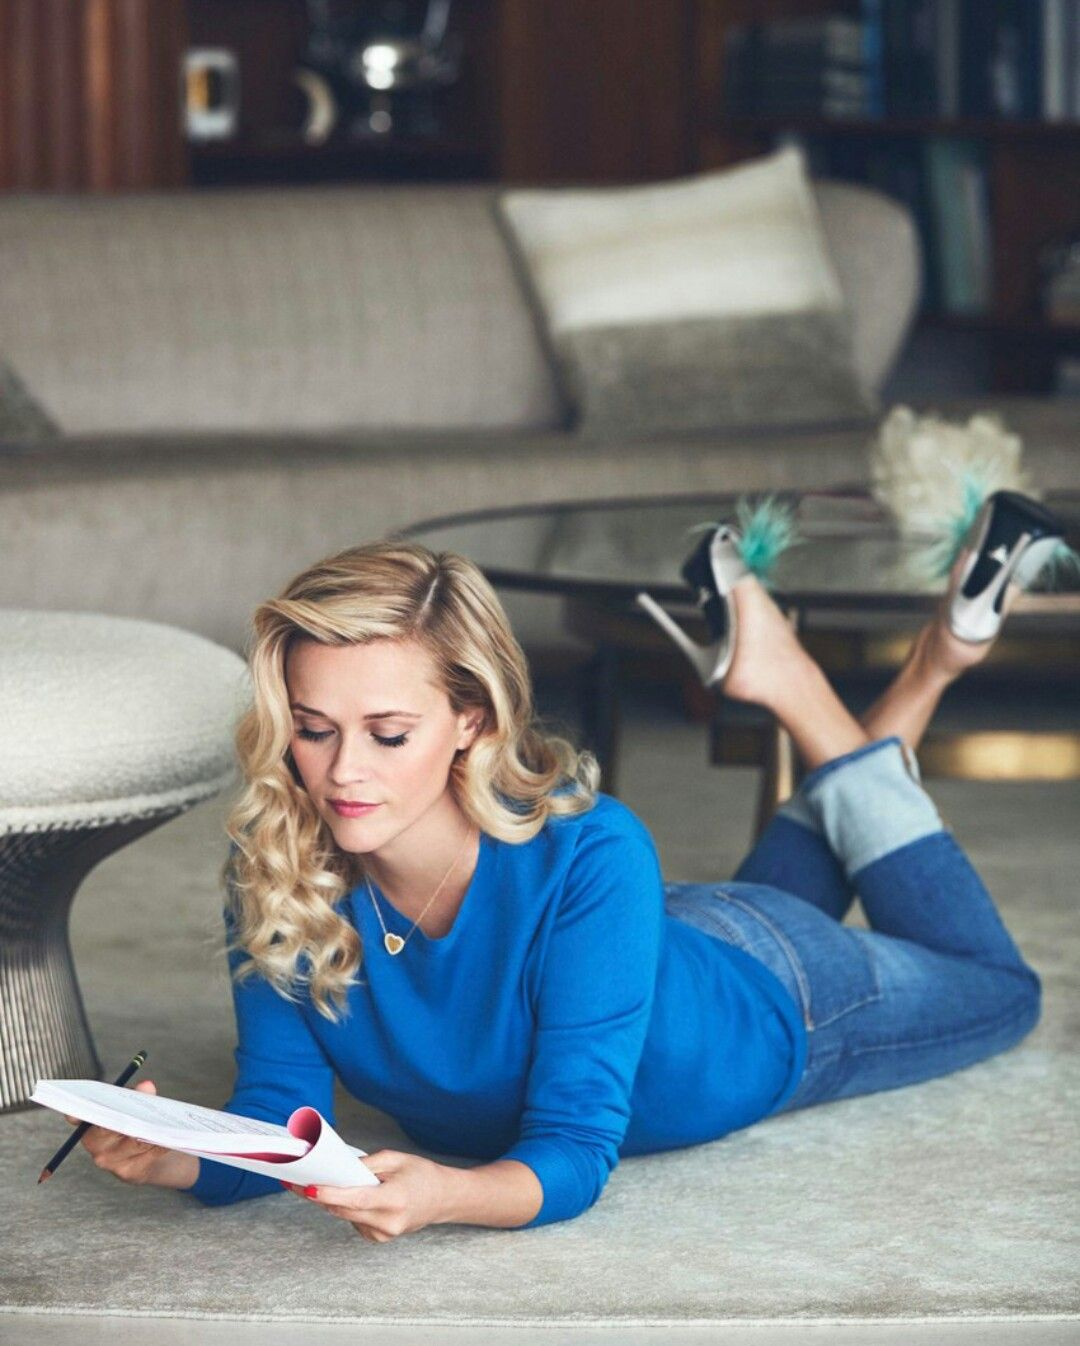 Making A Slist Reese Witherspoon Style Reese Whiterspoon Reese Witherspoon